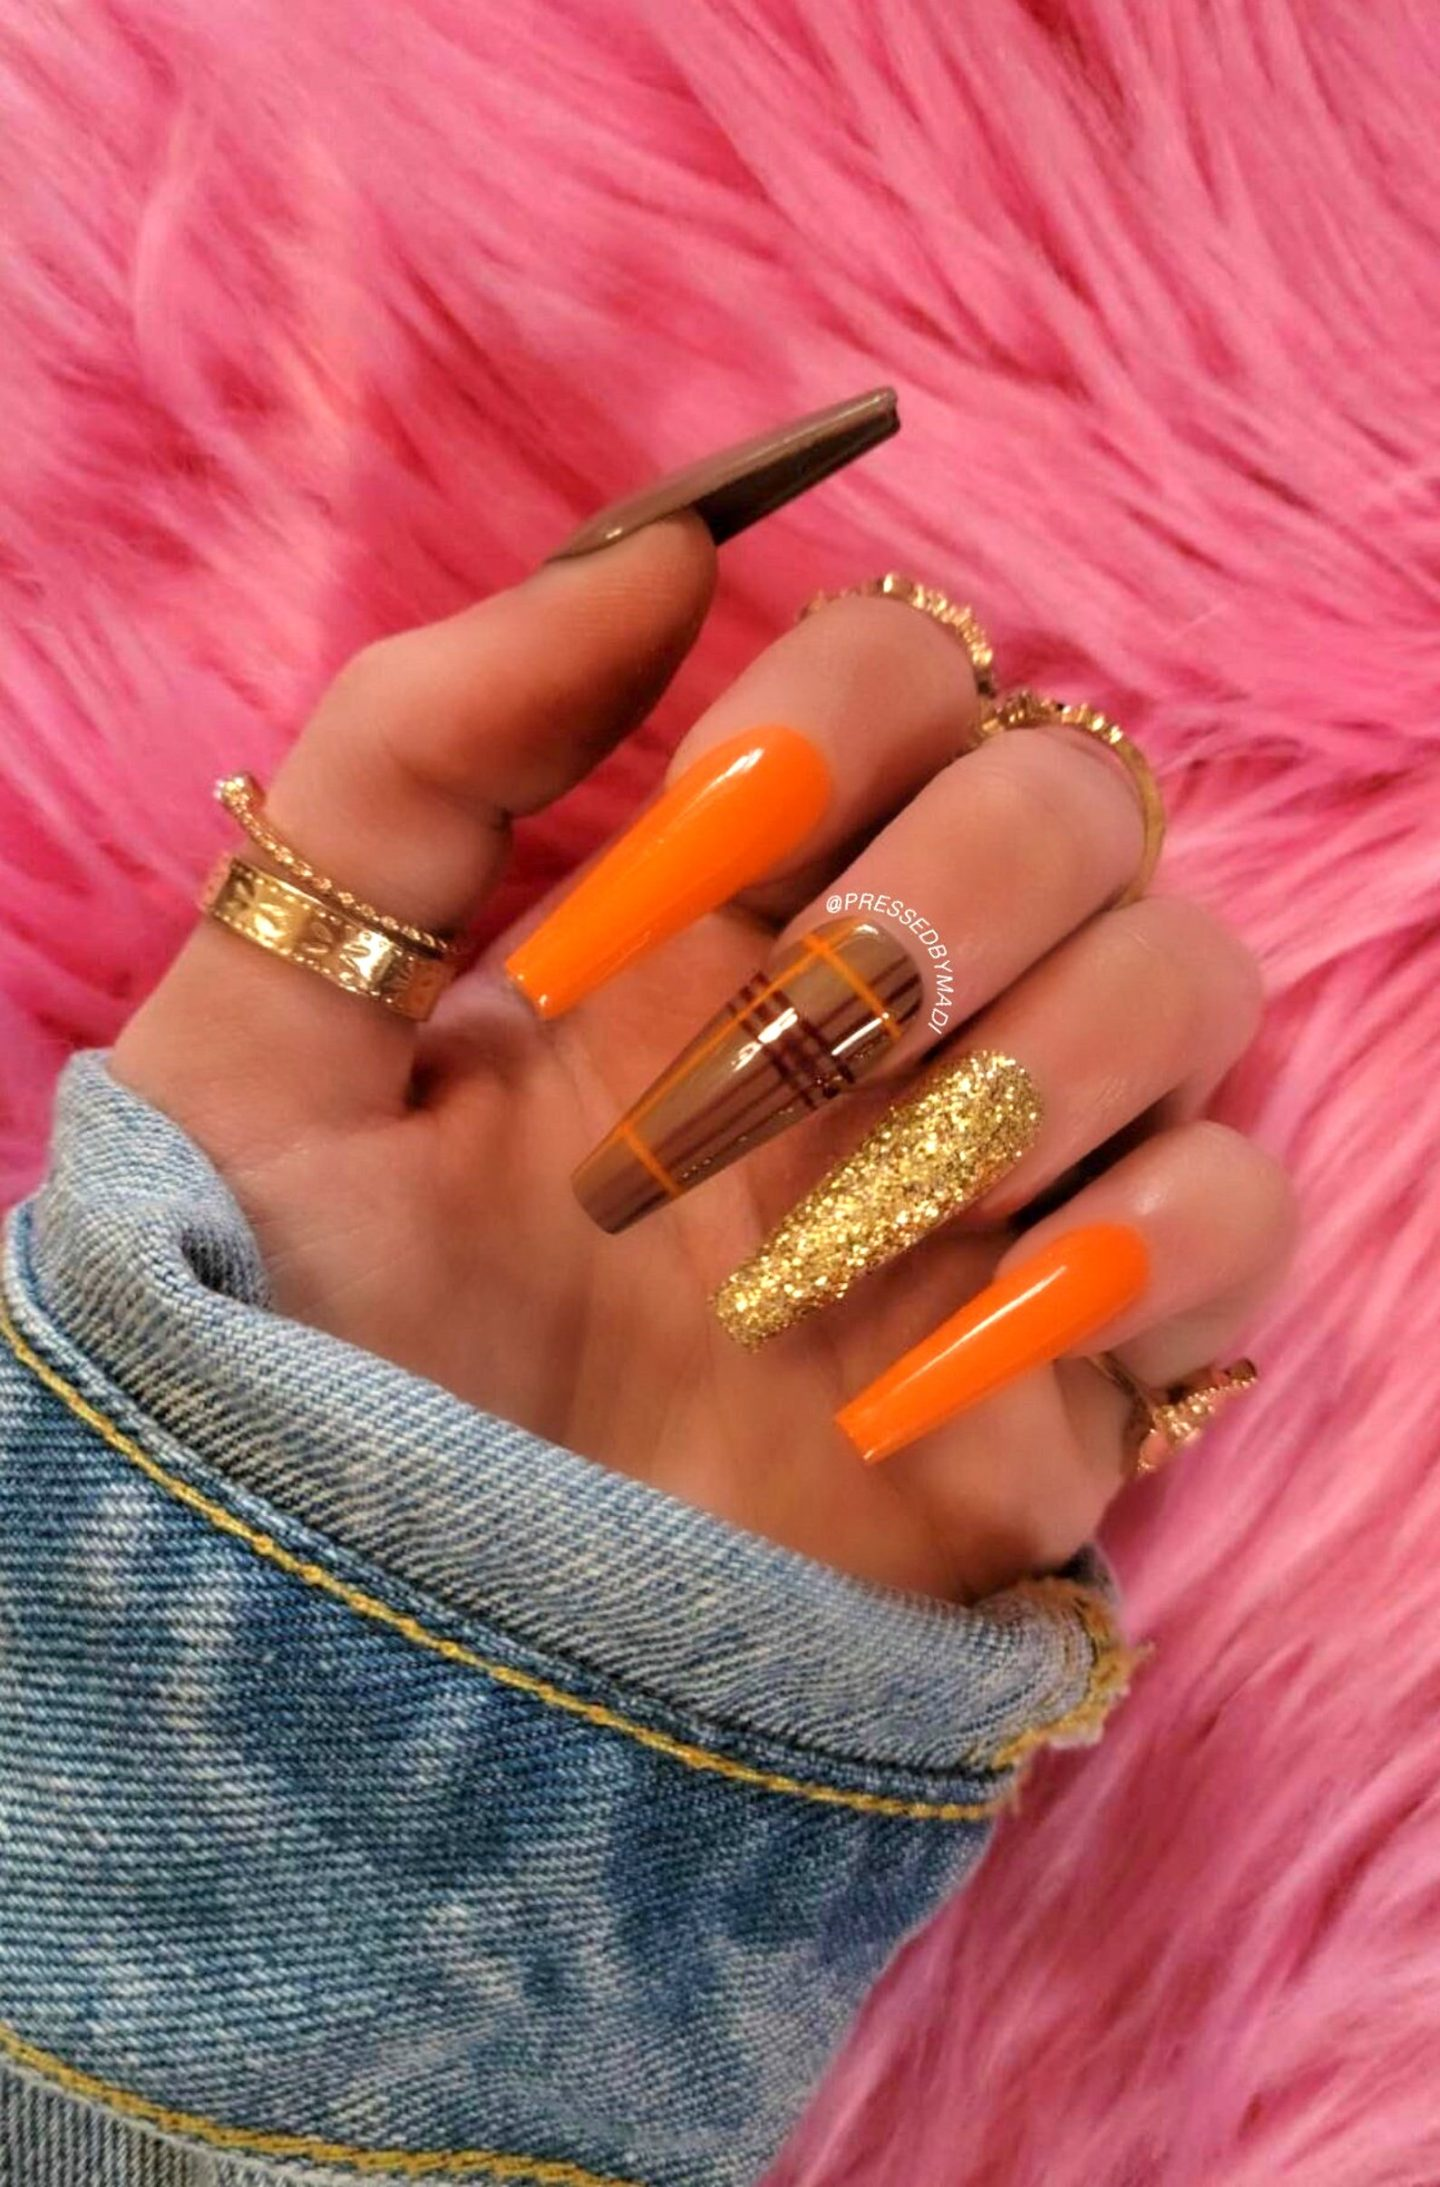 Long coffin fall nails with browns, orange and gold glitter